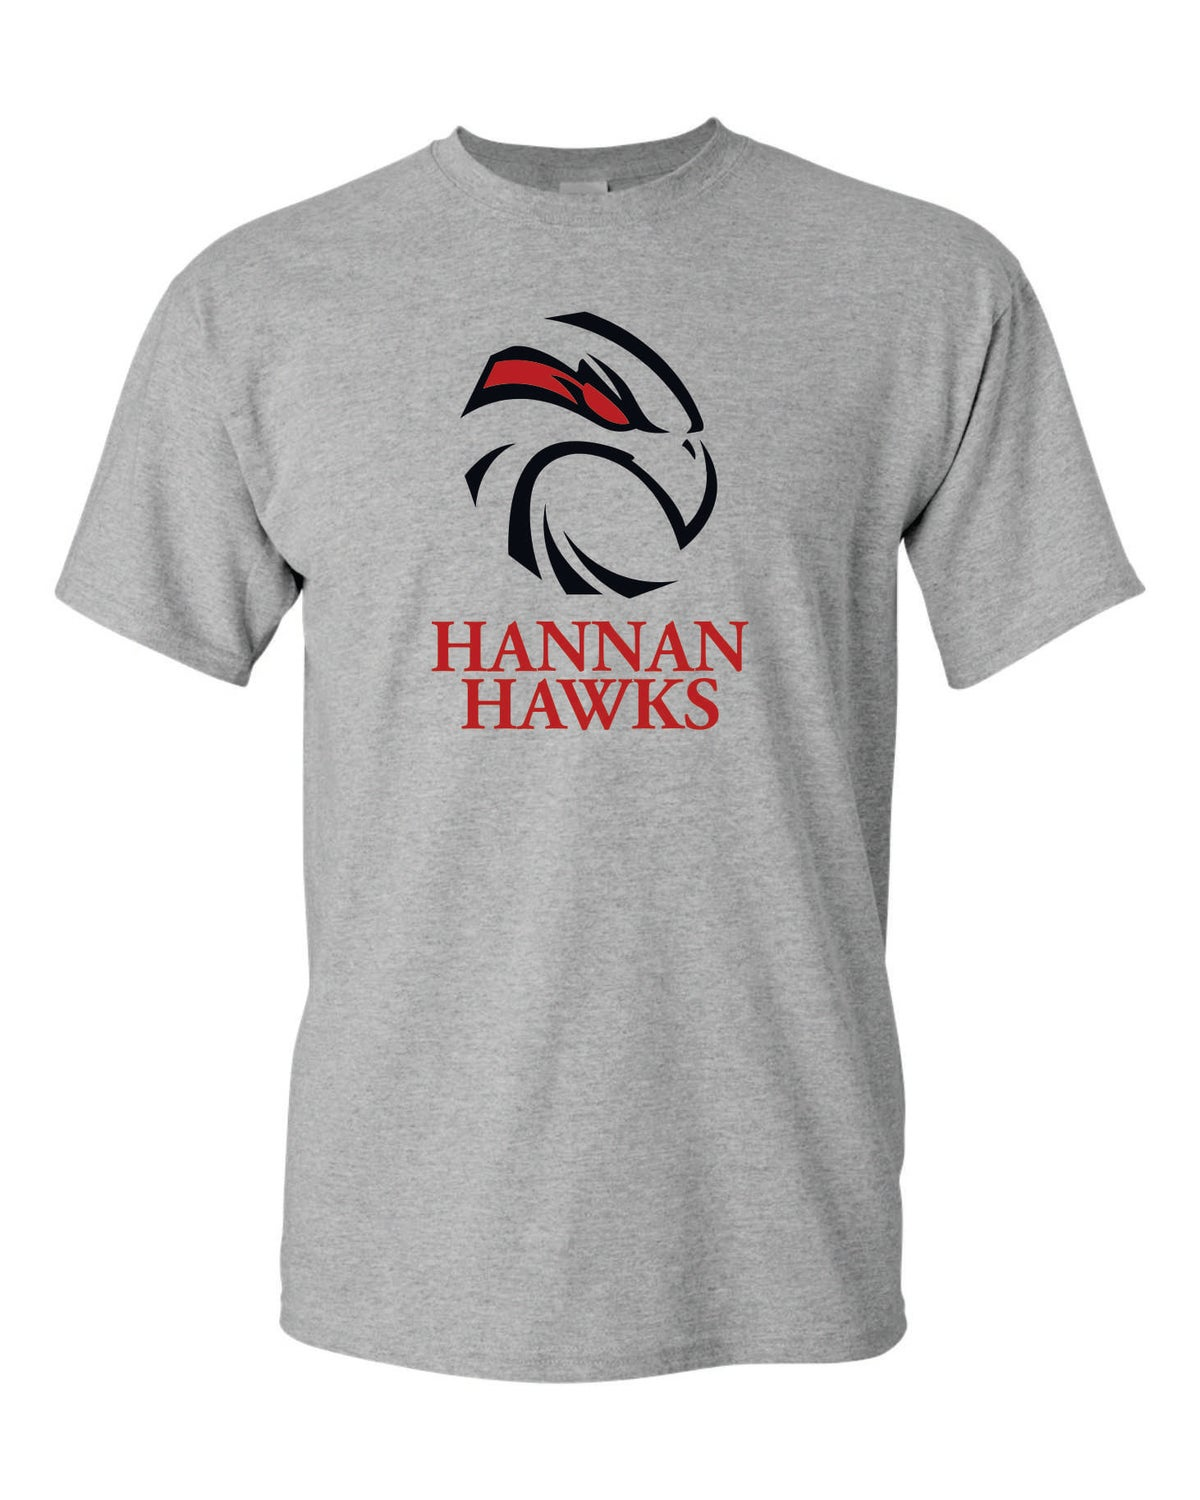 Image of Hannan Hawks Grey Tee